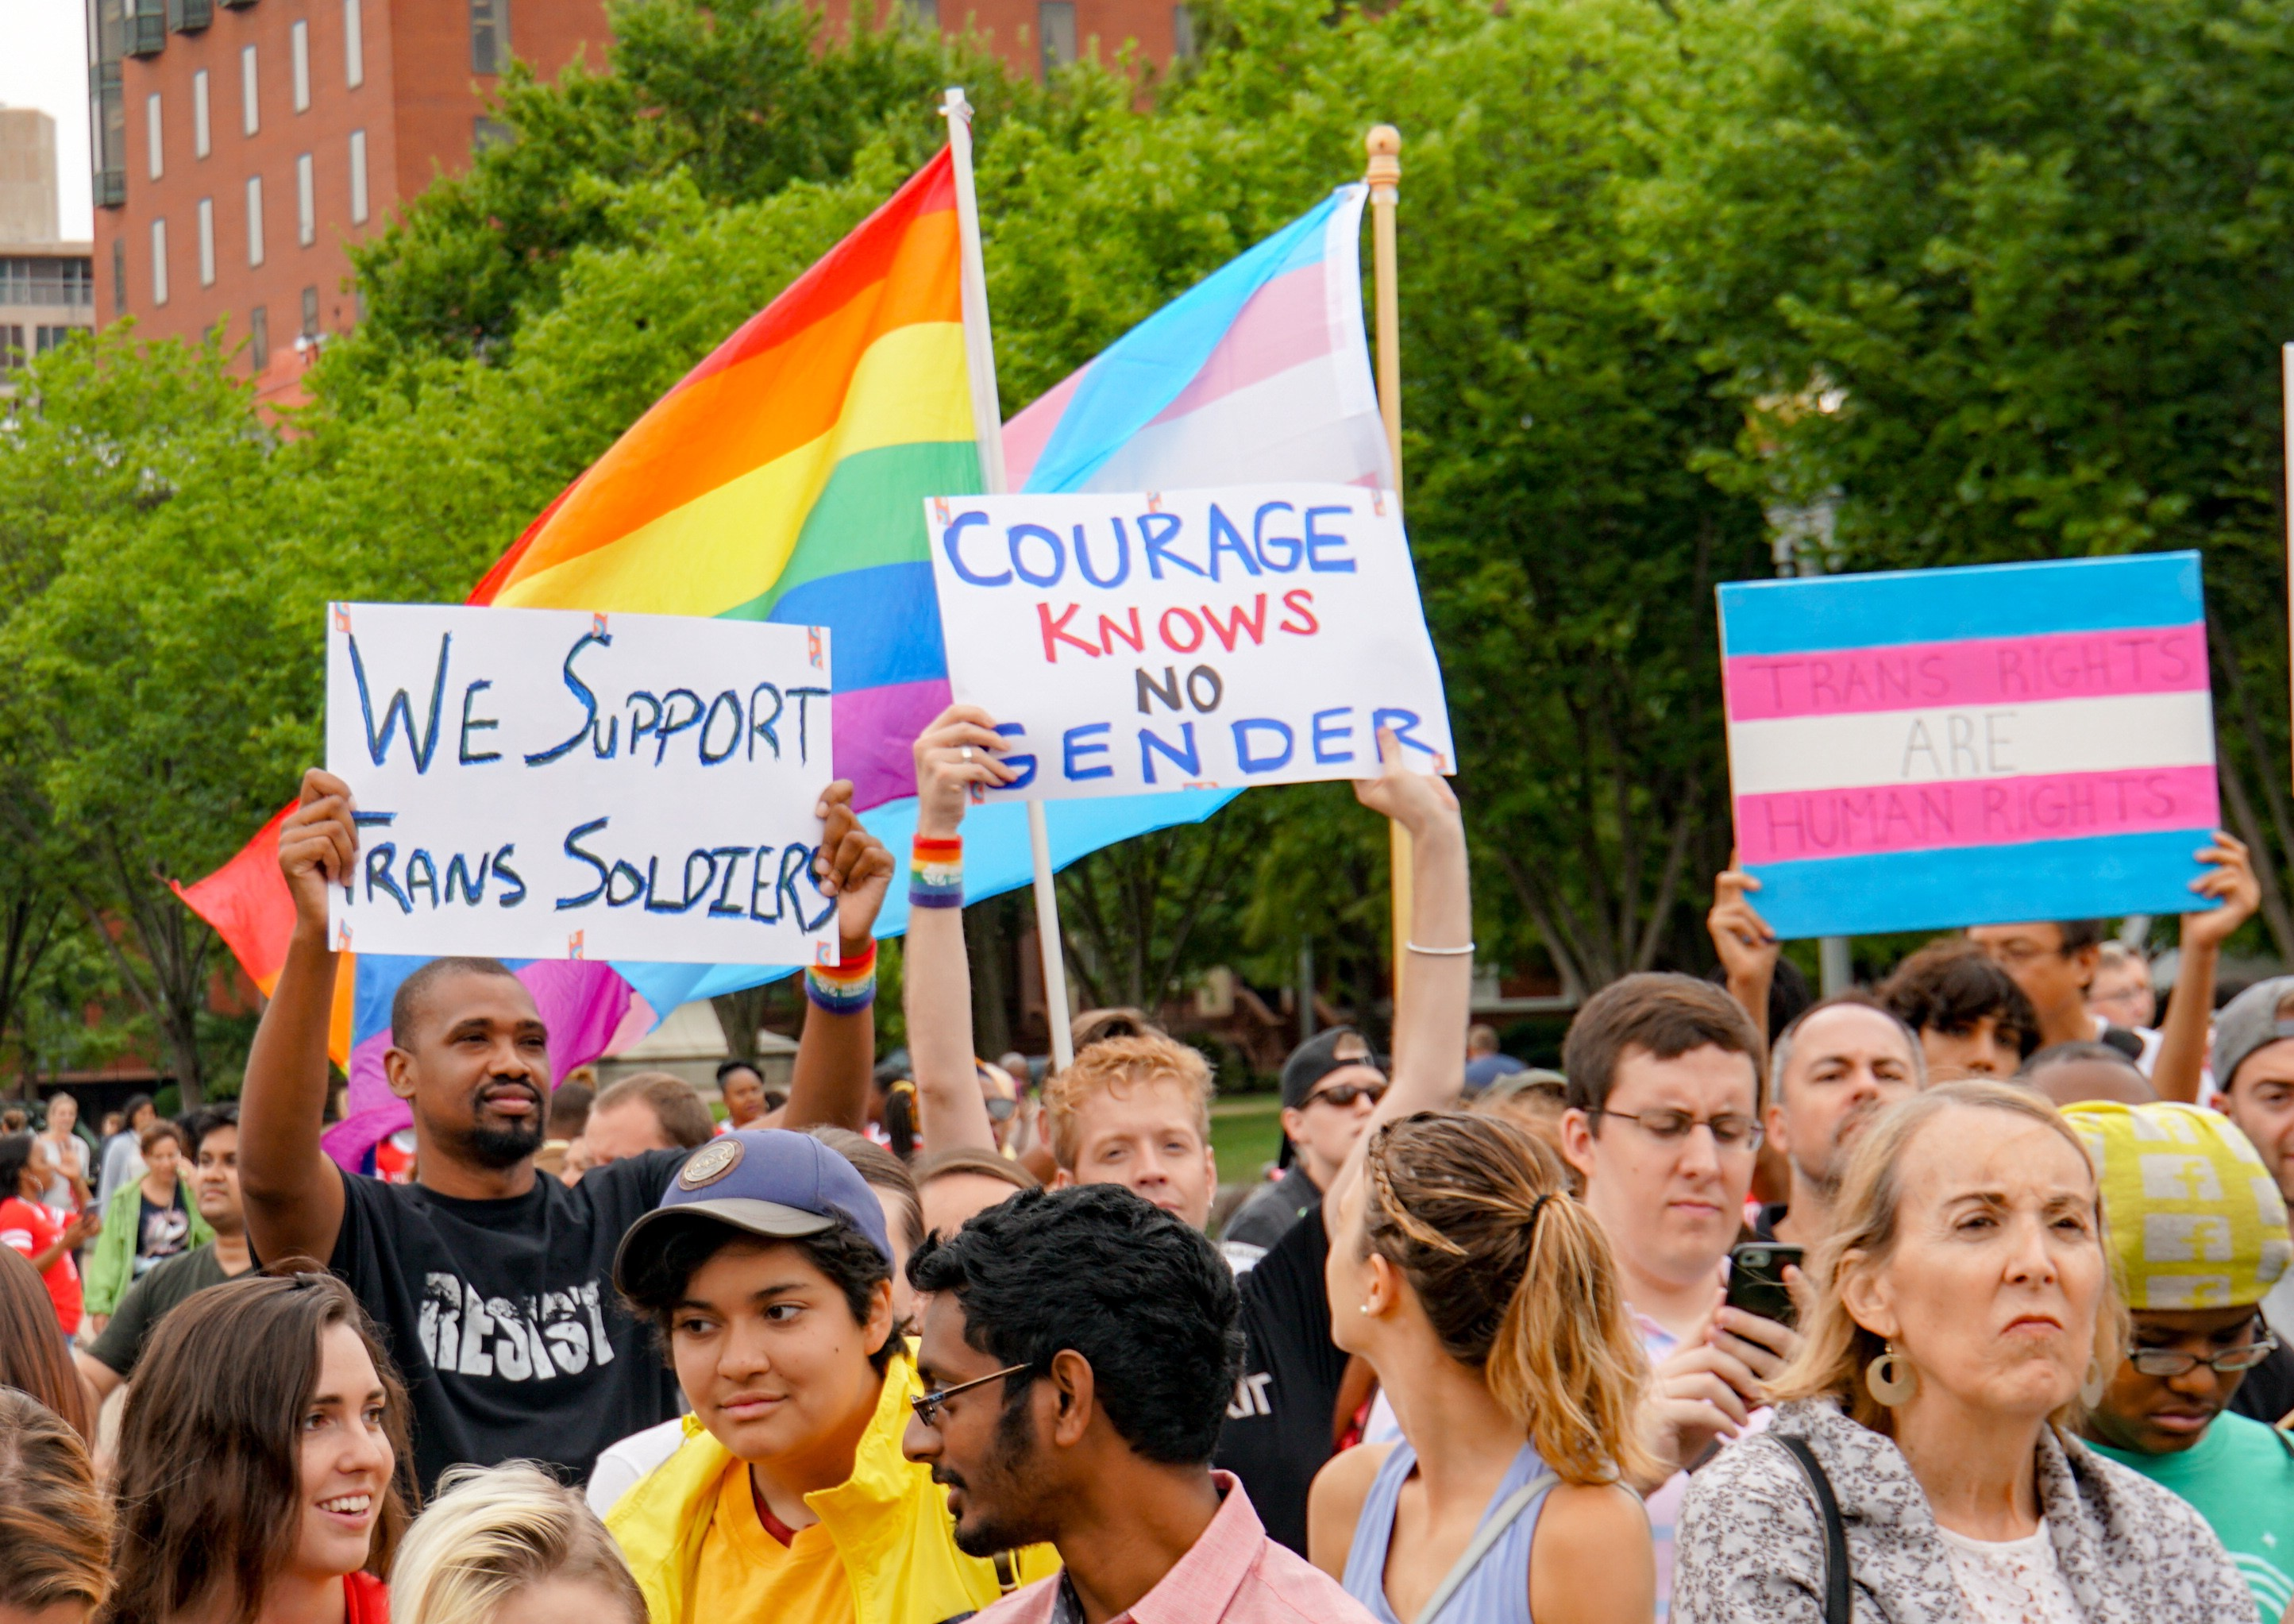 3 protest signs read: We support trans soldiers. Courage knows no gender. Trans rights are human rights.